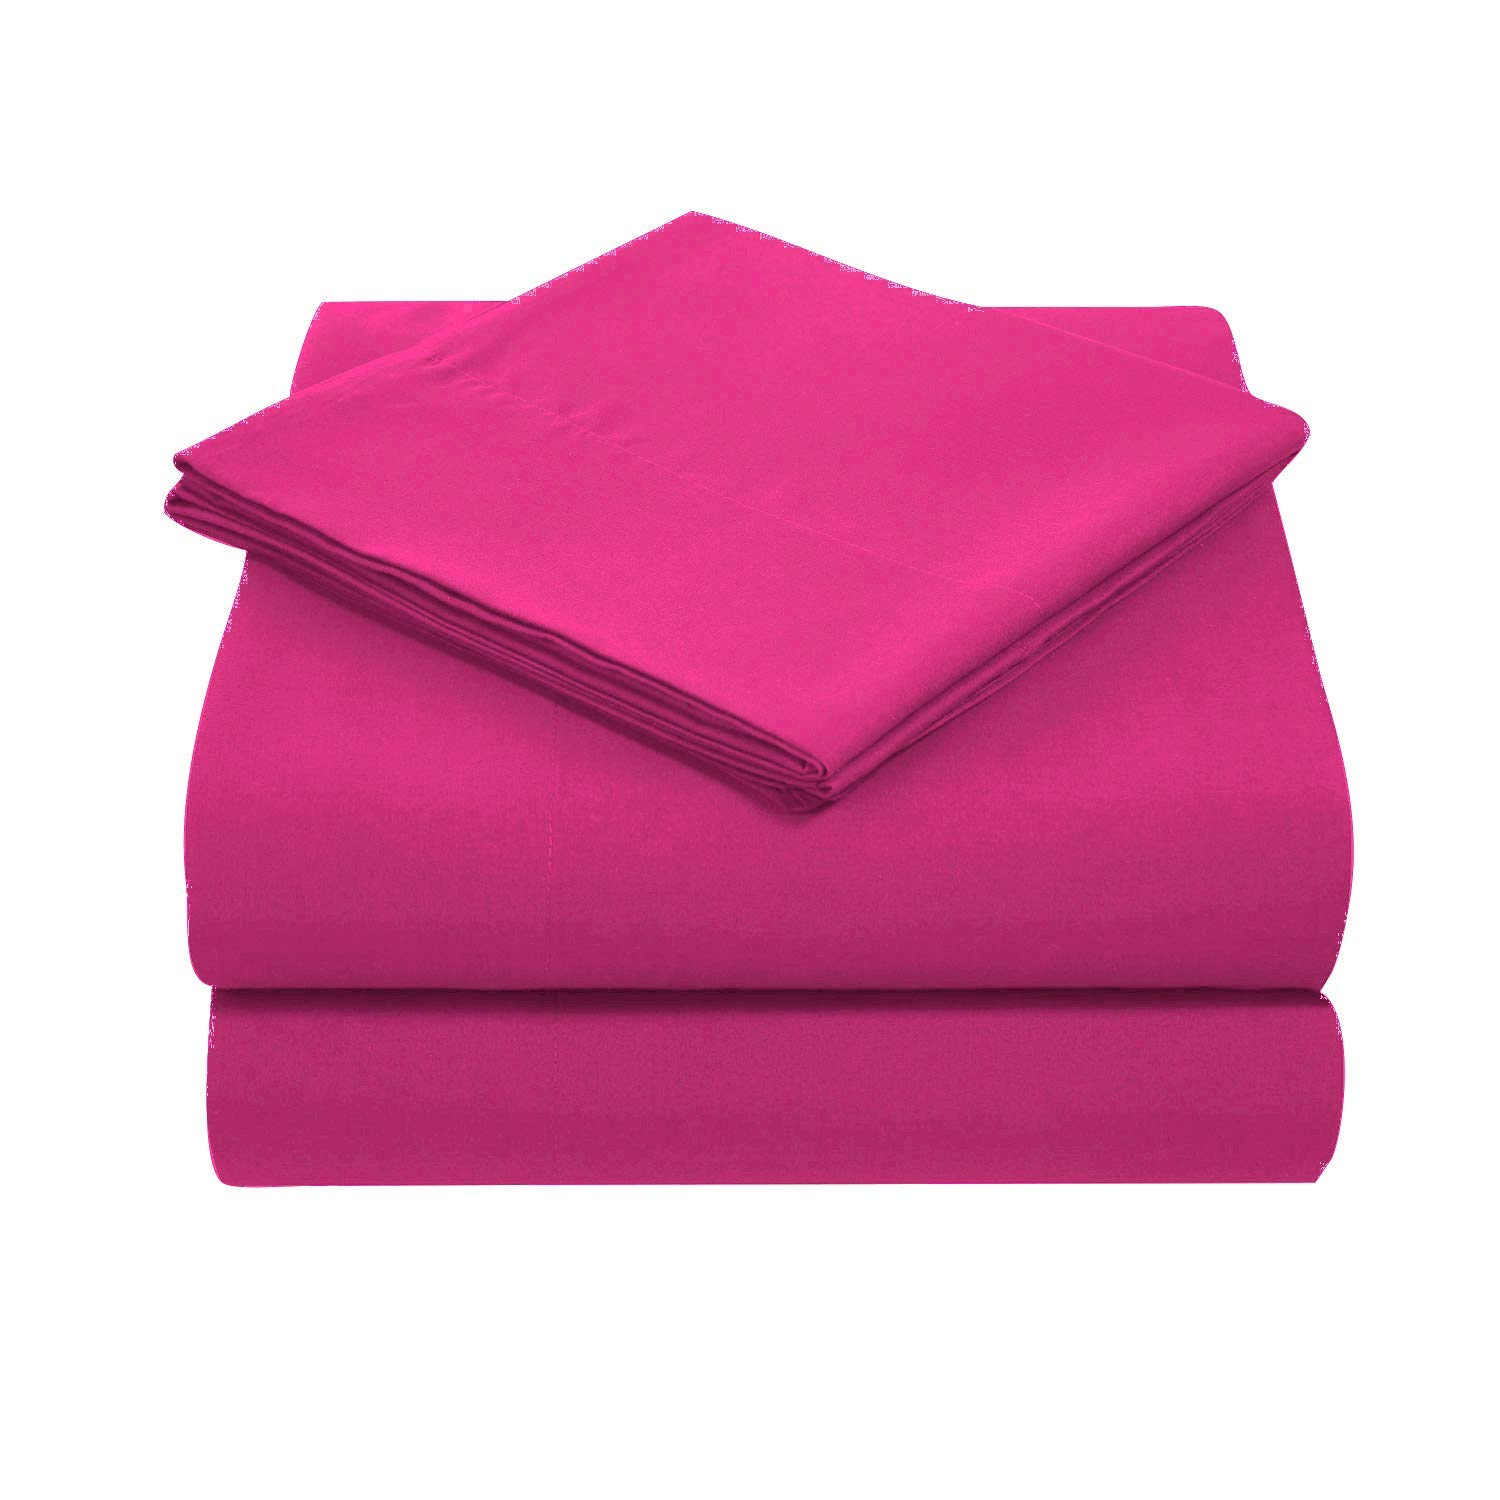 Kids' Furniture, Décor & Storage 400 TC ULTRA SOFT SILKY 100% EGYPTIAN COTTON 4 PIECE LUXURIOUS SHEET SET KING PINK SOLID BY PEARLBEDDING